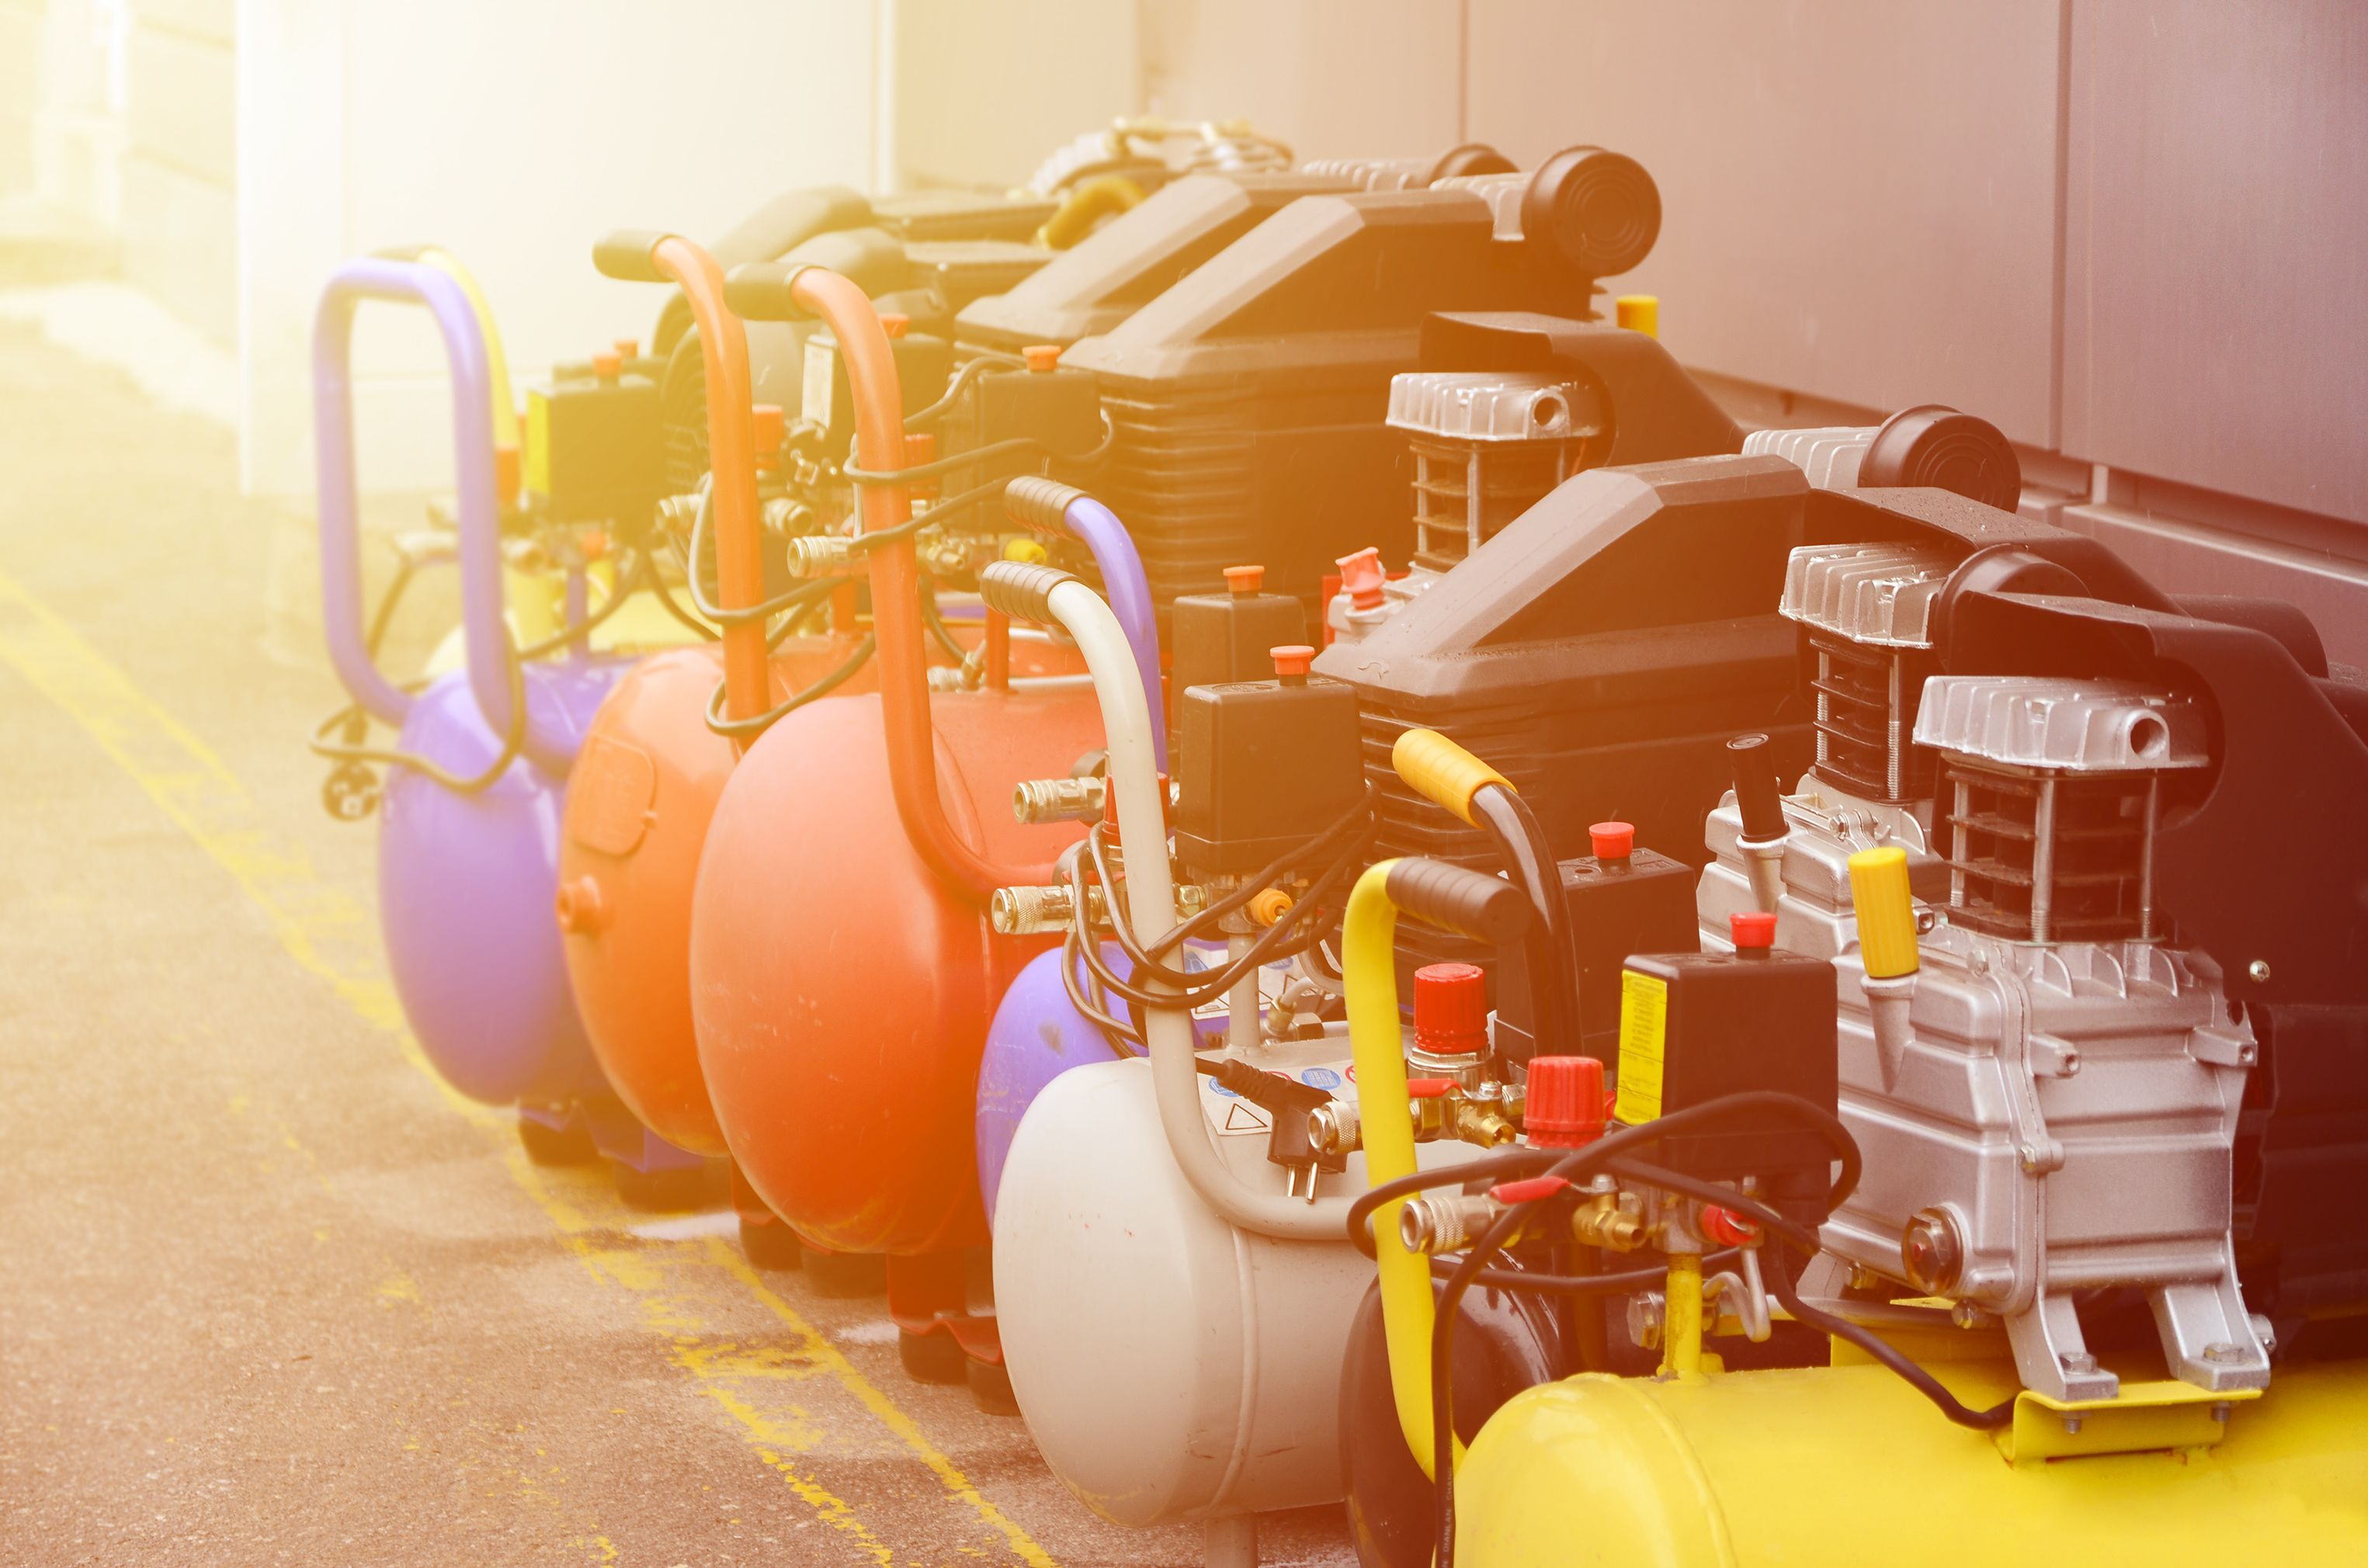 MacAir Compressor Ltd. offers a wide array of services